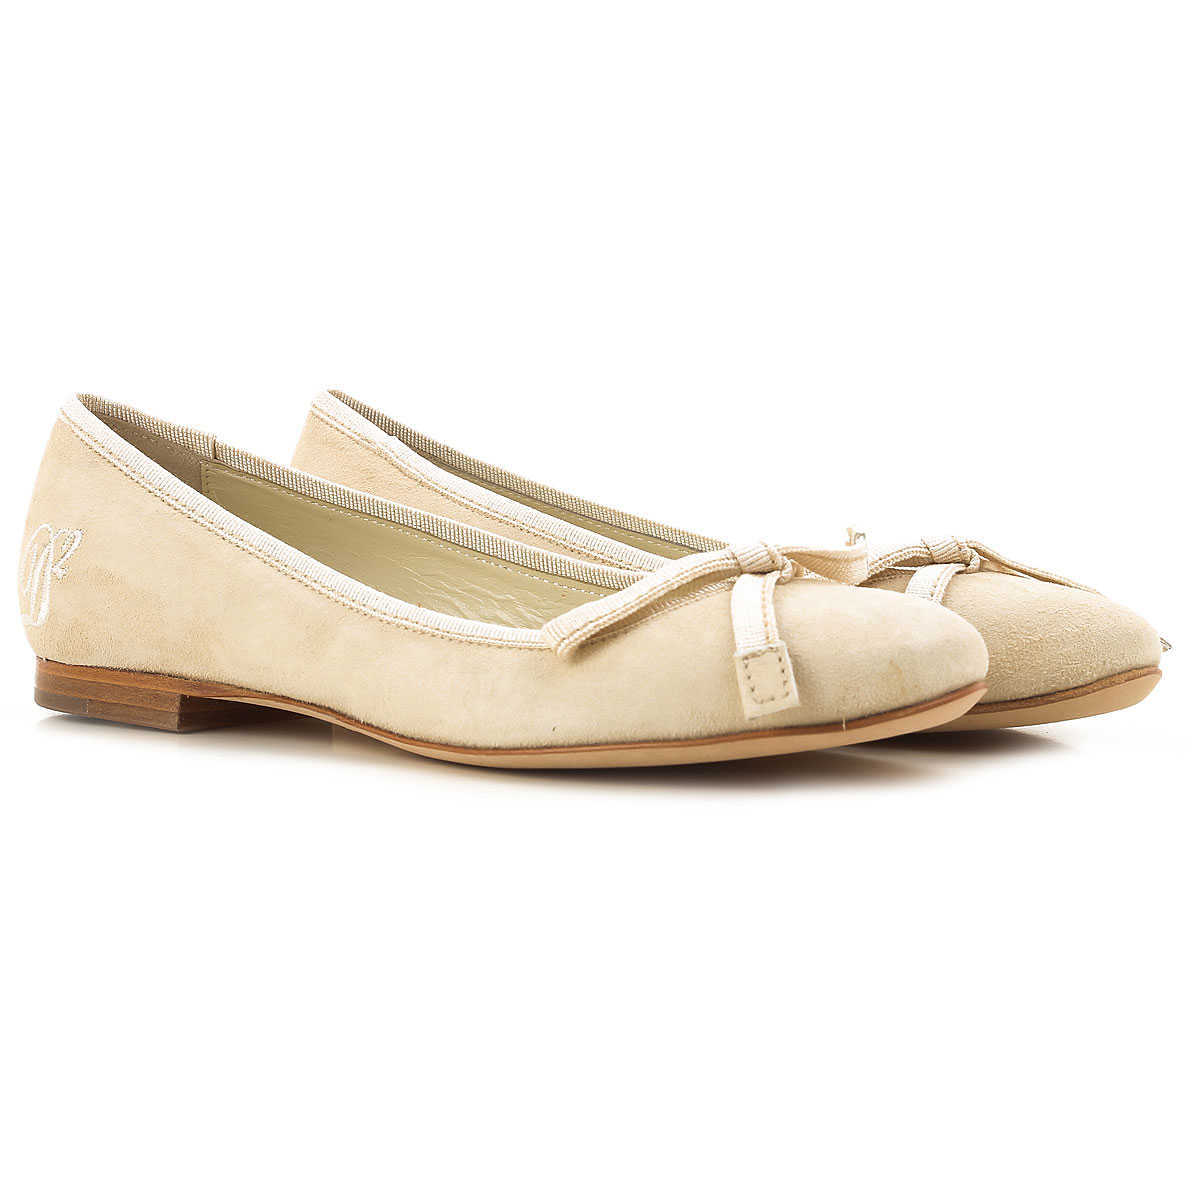 Dsquared2 Ballet Flats Ballerina Shoes for Women On Sale in Outlet Natural DK - GOOFASH - Womens BALLERINAS